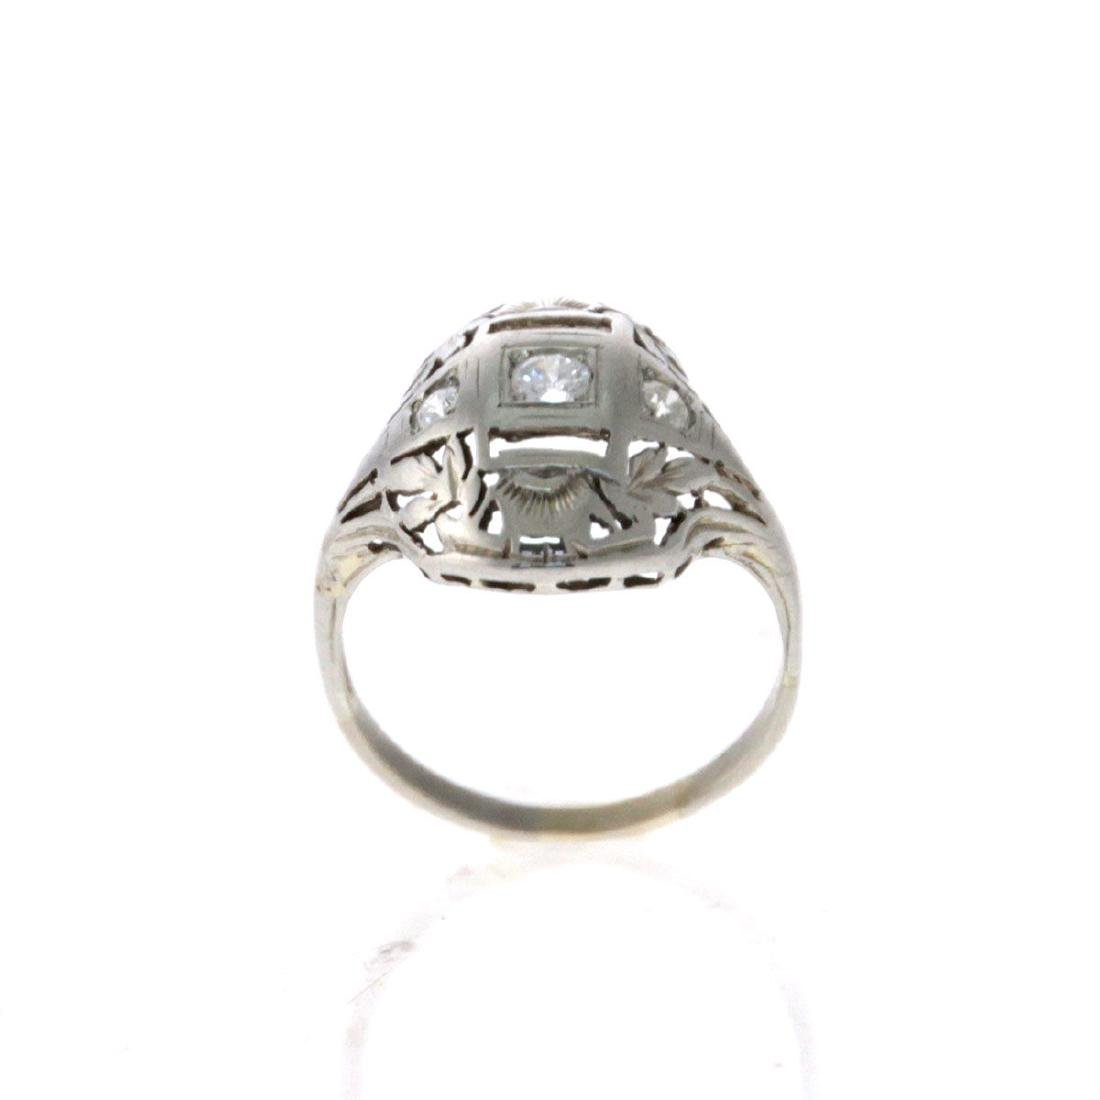 Art Deco 14k White Gold and Diamond Ring.